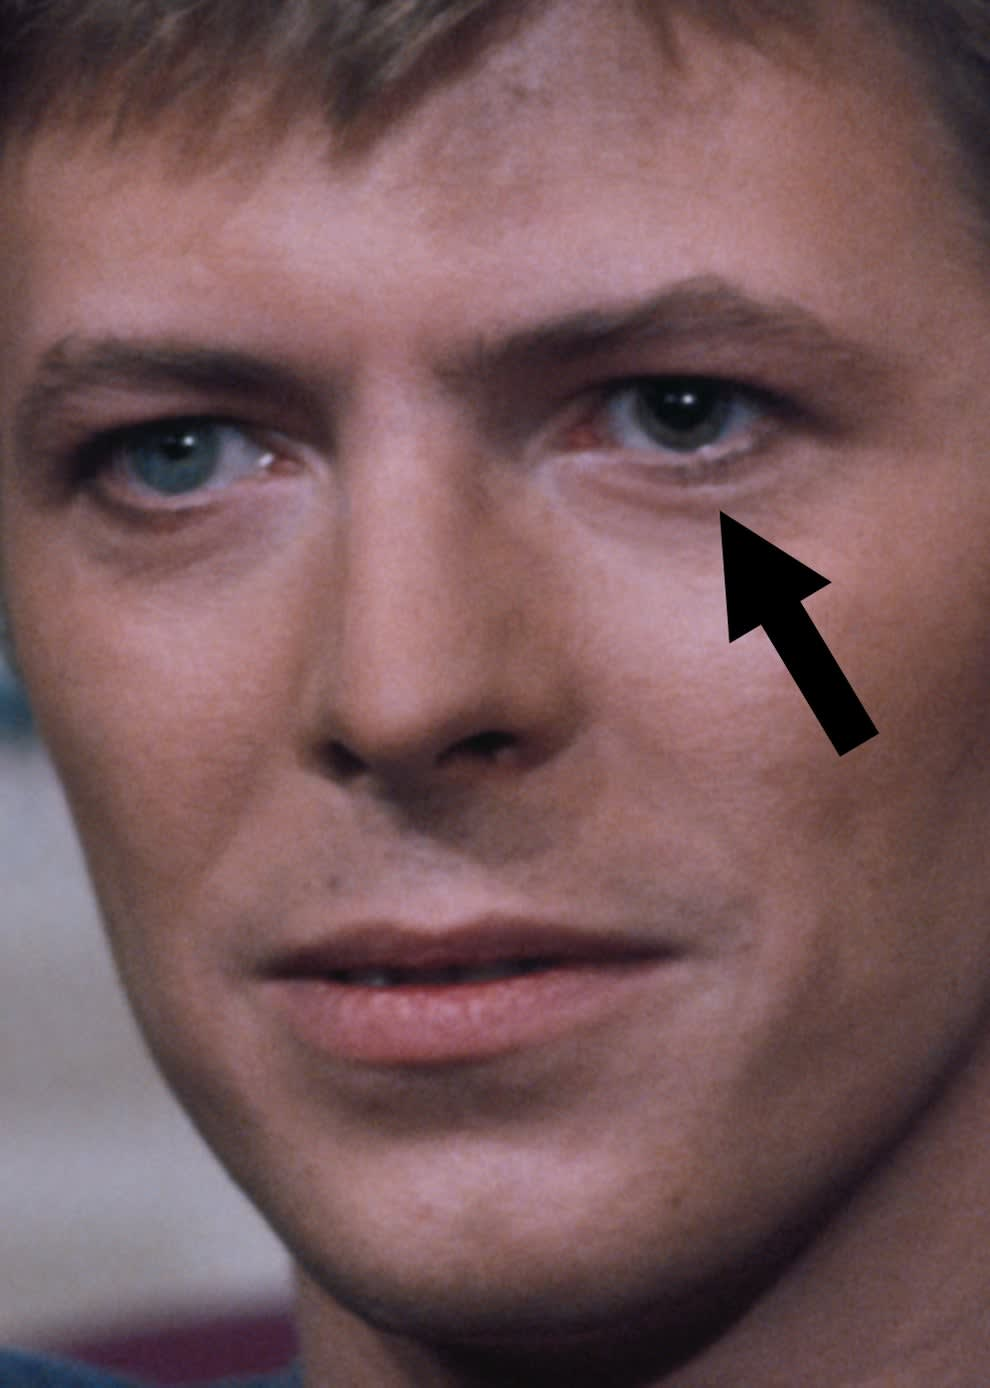 Close-up of David's face with an arrow pointing at his left eye